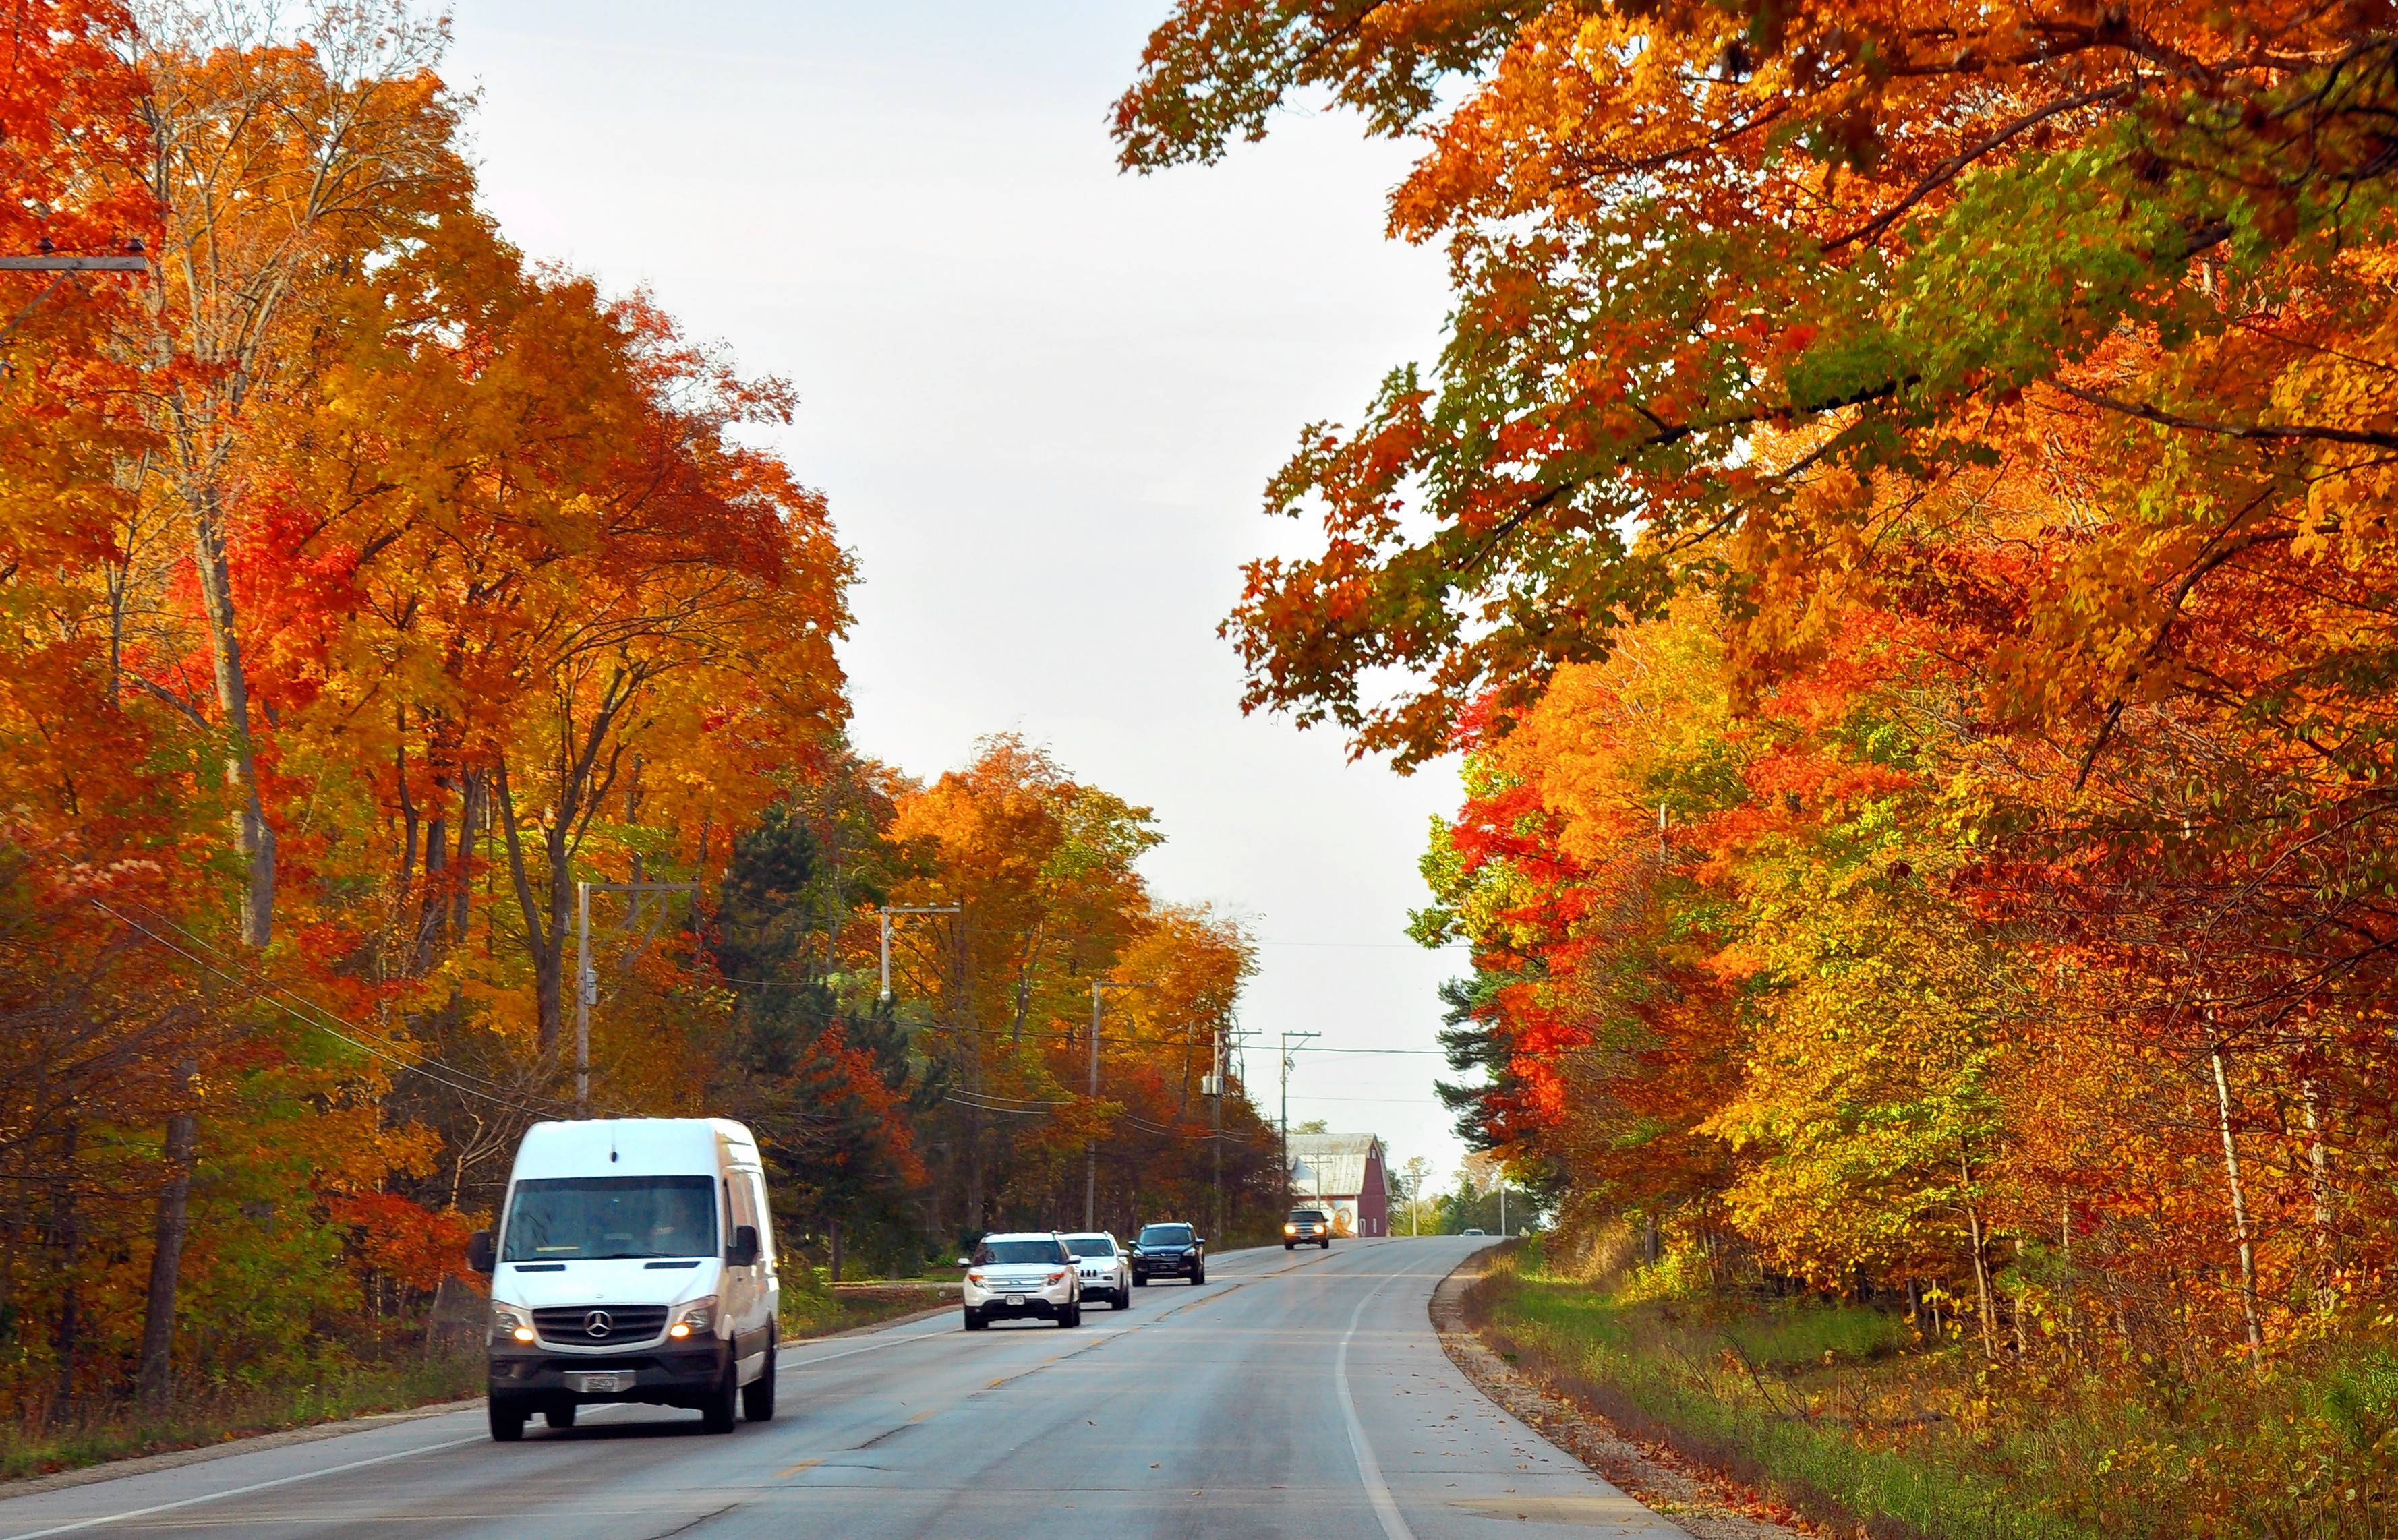 Brilliant fall foliage lines roads in Door County Wis. in October. & Fall foliage lights up Wisconsinu0027s Door County